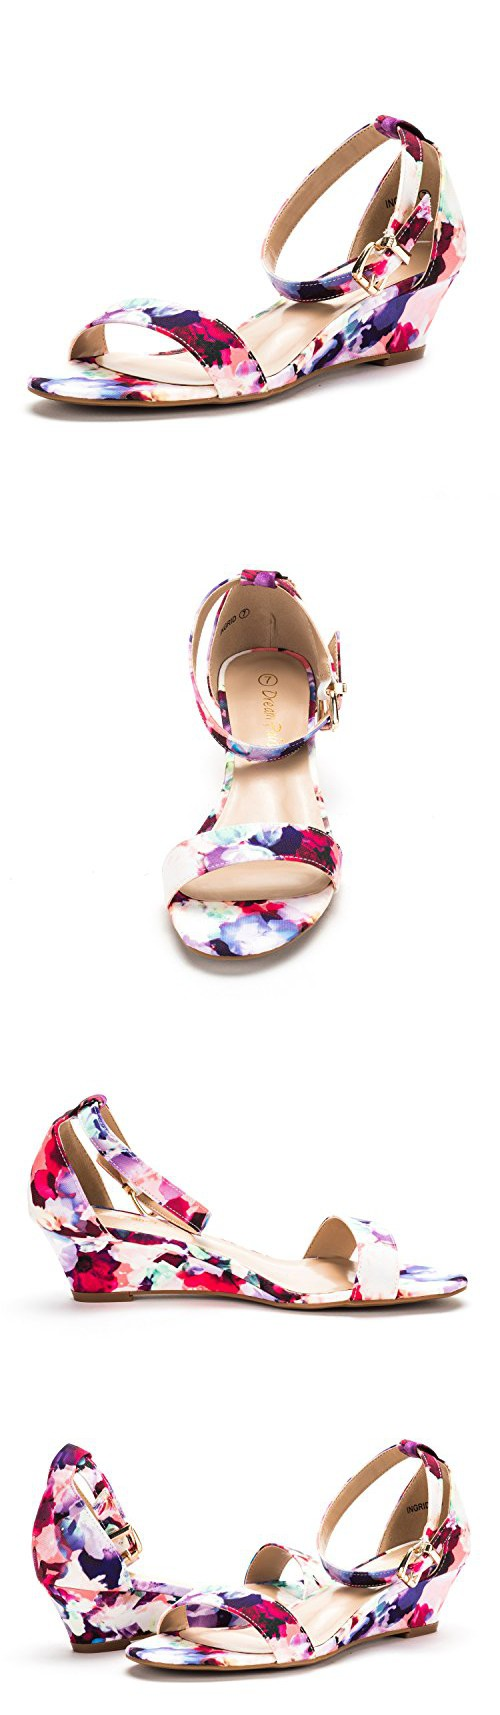 498073f88324bb DREAM PAIRS iNGRID New Women Fashion Wear Summer Open Toe Ankle Strap  Buckle Thong Design Low